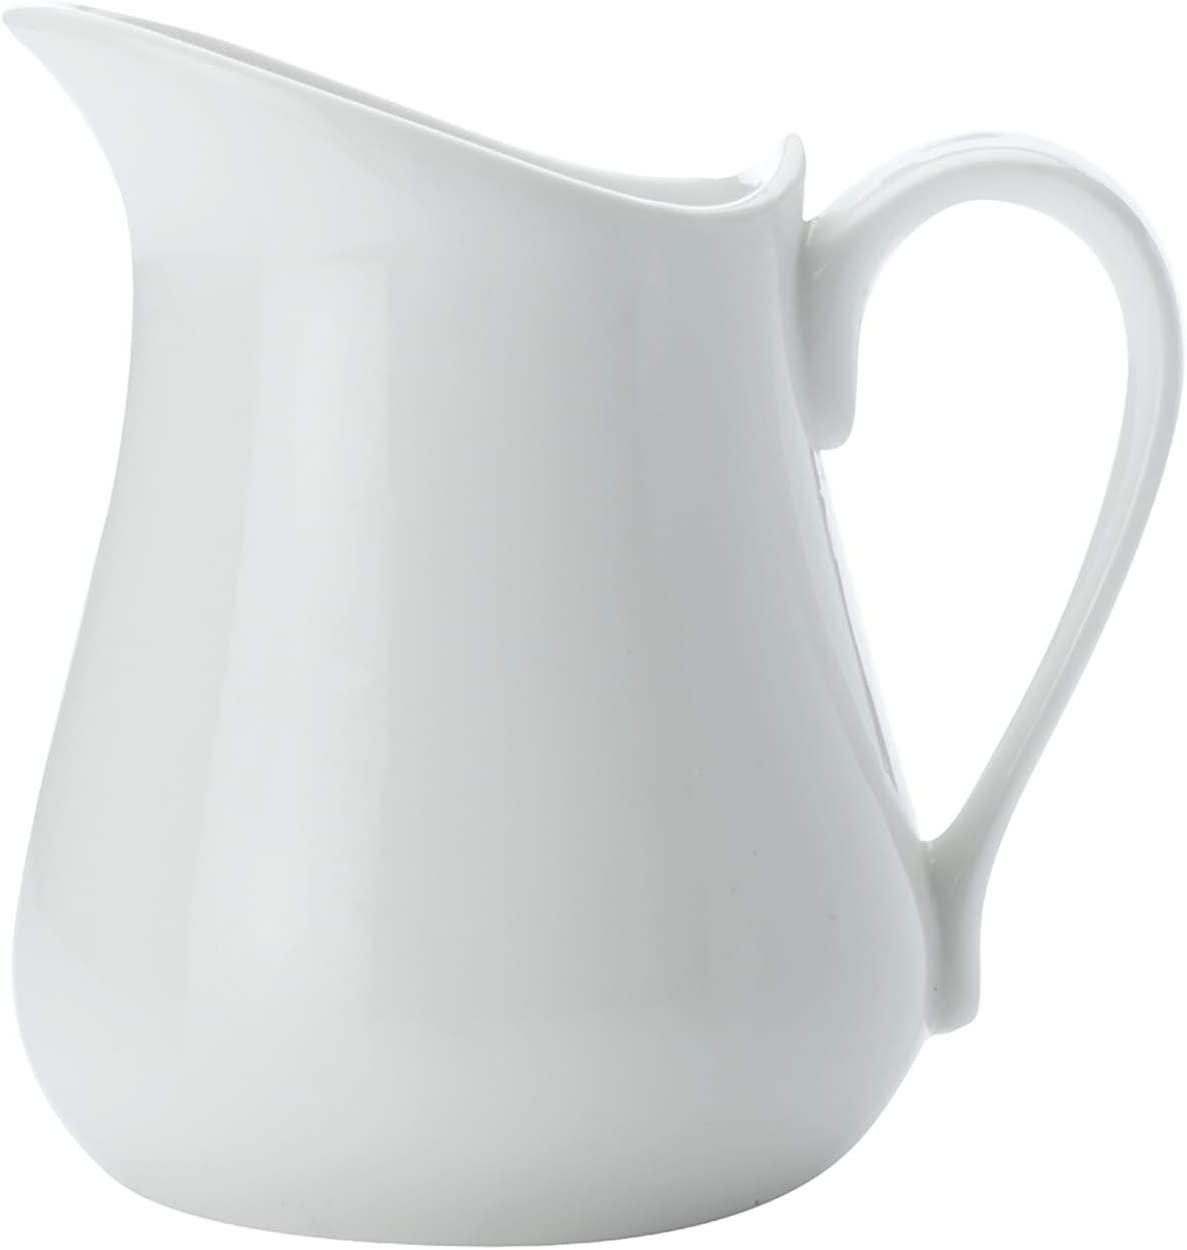 Maxwell and Williams Basics Milk Jug, 4-Ounce, White